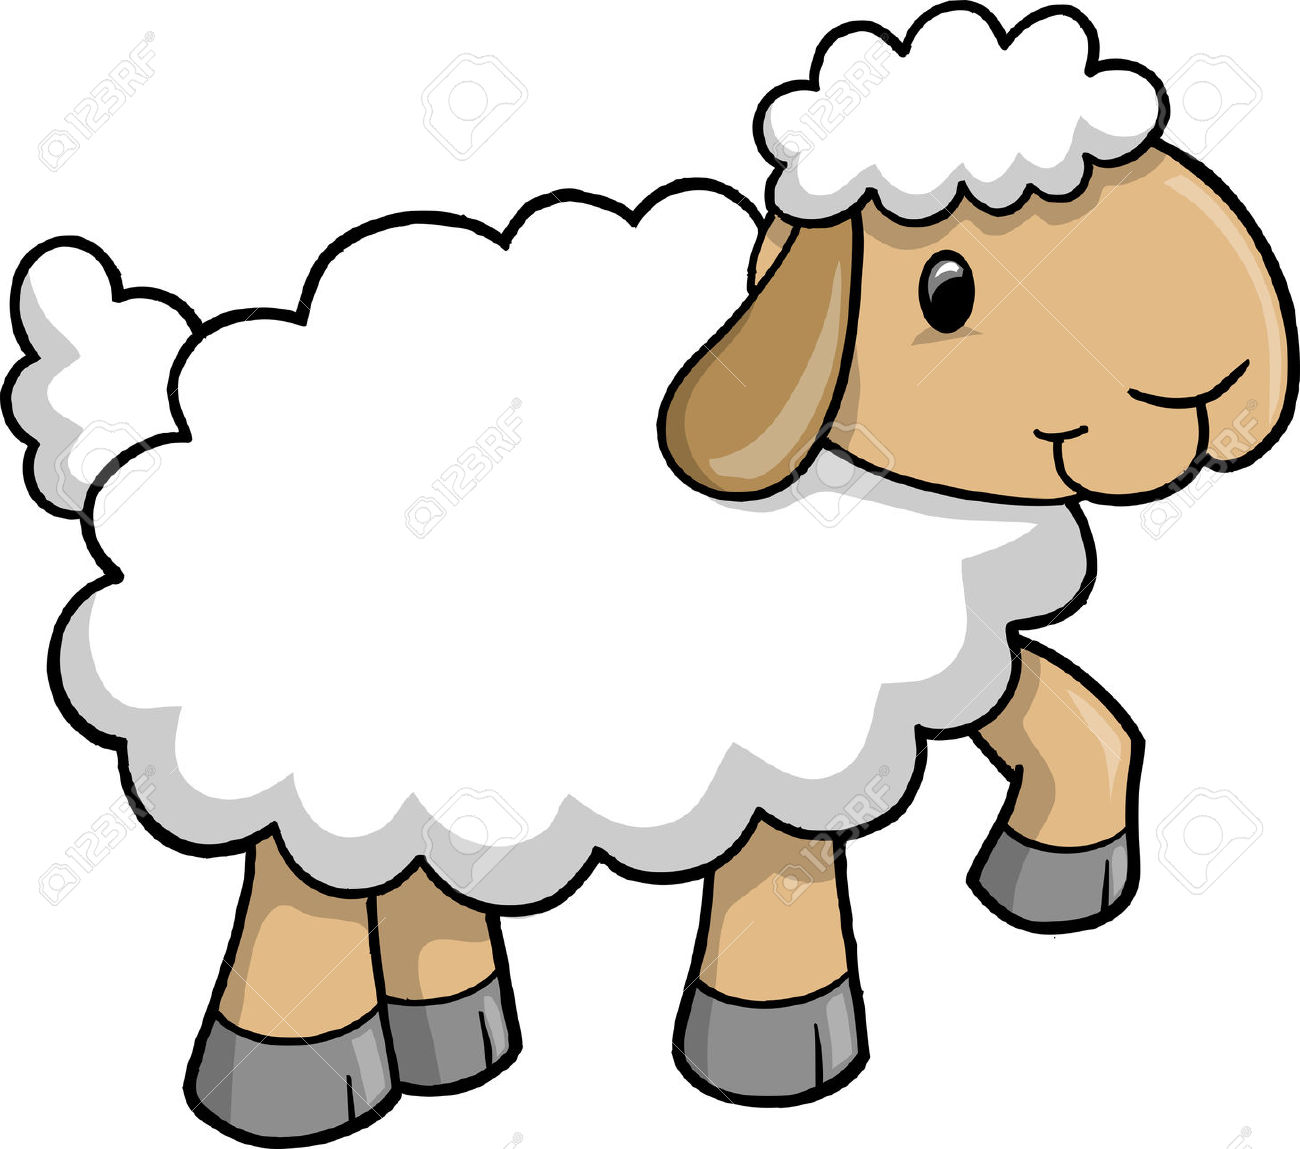 image royalty free library Free download on webstockreview. Lamb clipart